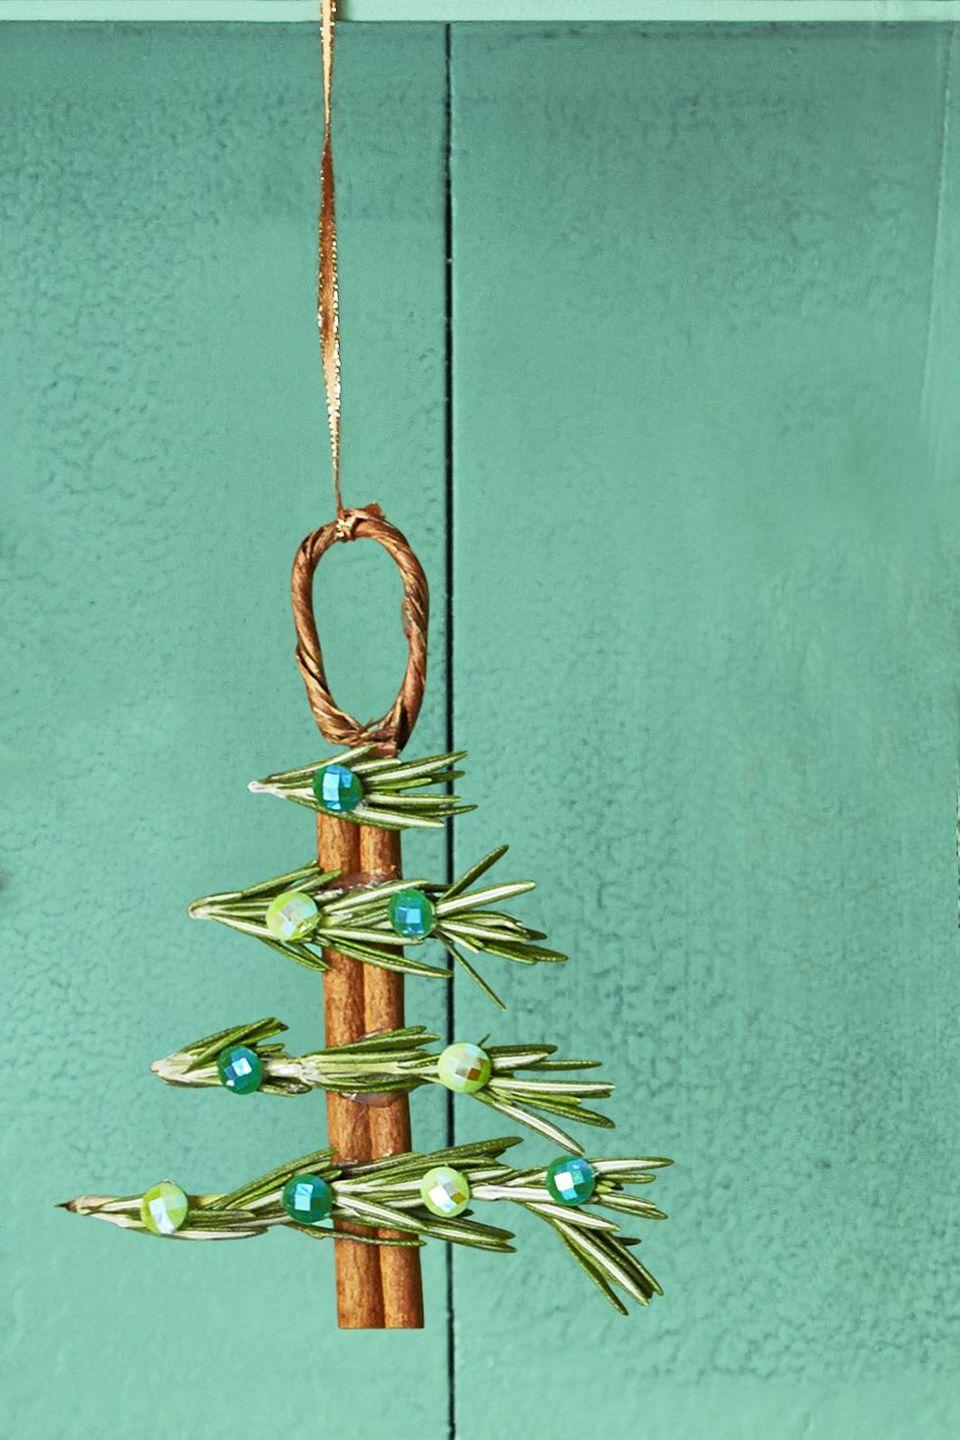 "<p>Not only does this easy-to-craft ornament look pretty, but it also smells great! Hot glue brings together rosemary, cinnamon sticks, and gemstones for a festive and eye-catching final look.</p><p><strong>To make:</strong> Bend a 30"" piece of naturally coiled wrapped wire in half to form a loop, then gently push each end into the hollow part of a cinnamon stick. Use hot glue to attach cut sprigs of fresh rosemary for branches and small gems for ornaments. </p><p><strong><a class=""link rapid-noclick-resp"" href=""https://www.amazon.com/s?k=cinnamon+stick&i=grocery&ref=nb_sb_noss&tag=syn-yahoo-20&ascsubtag=%5Bartid%7C10050.g.1070%5Bsrc%7Cyahoo-us"" rel=""nofollow noopener"" target=""_blank"" data-ylk=""slk:SHOP CINNAMON STICKS"">SHOP CINNAMON STICKS</a><br></strong></p>"